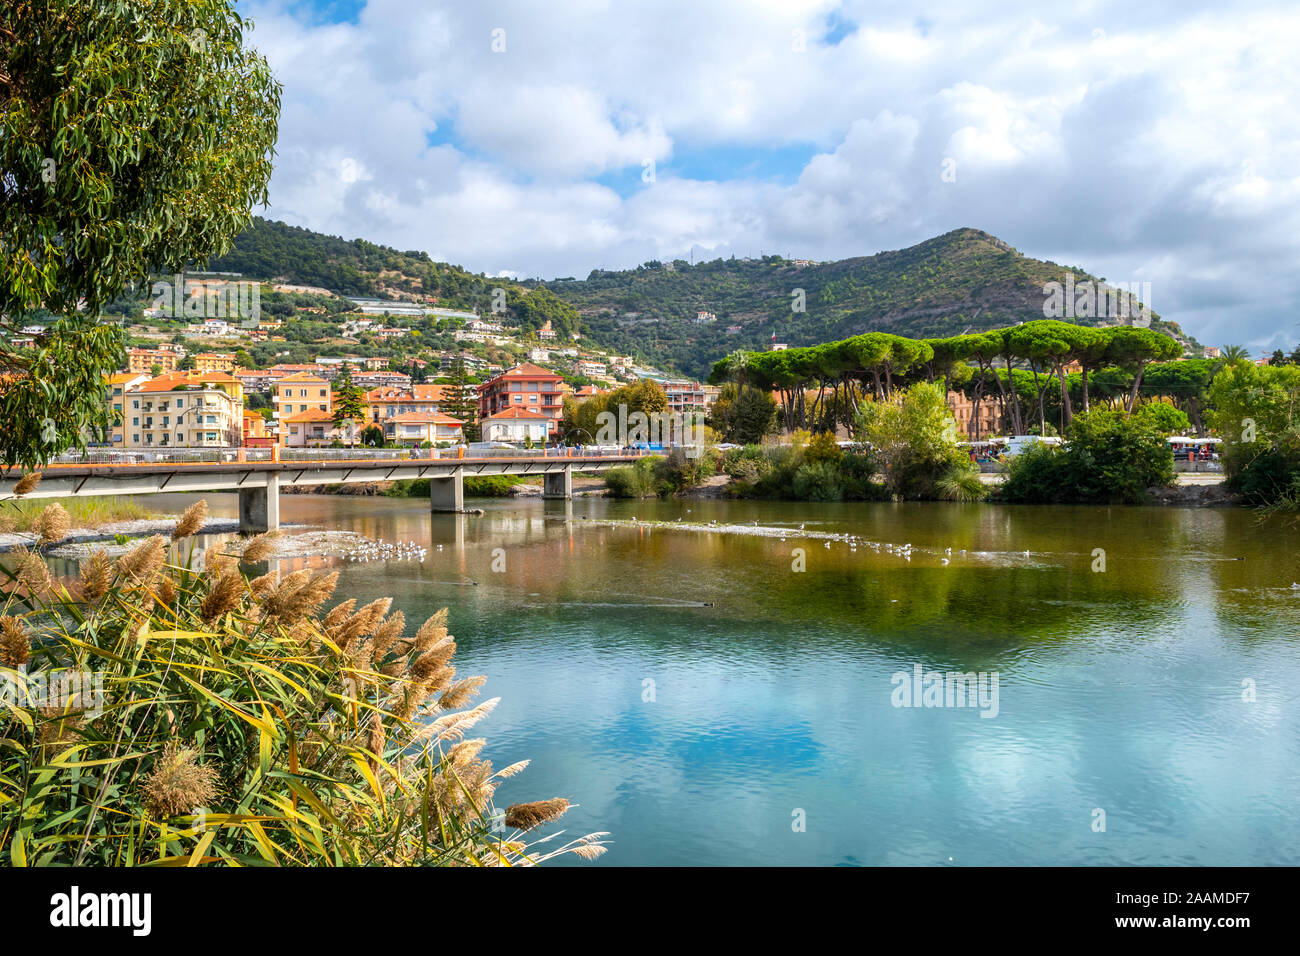 The bridge over the River Roia, filled with seagulls and ducks with the Italian village of Ventimiglia behind on the Italian Riviera. Stock Photo